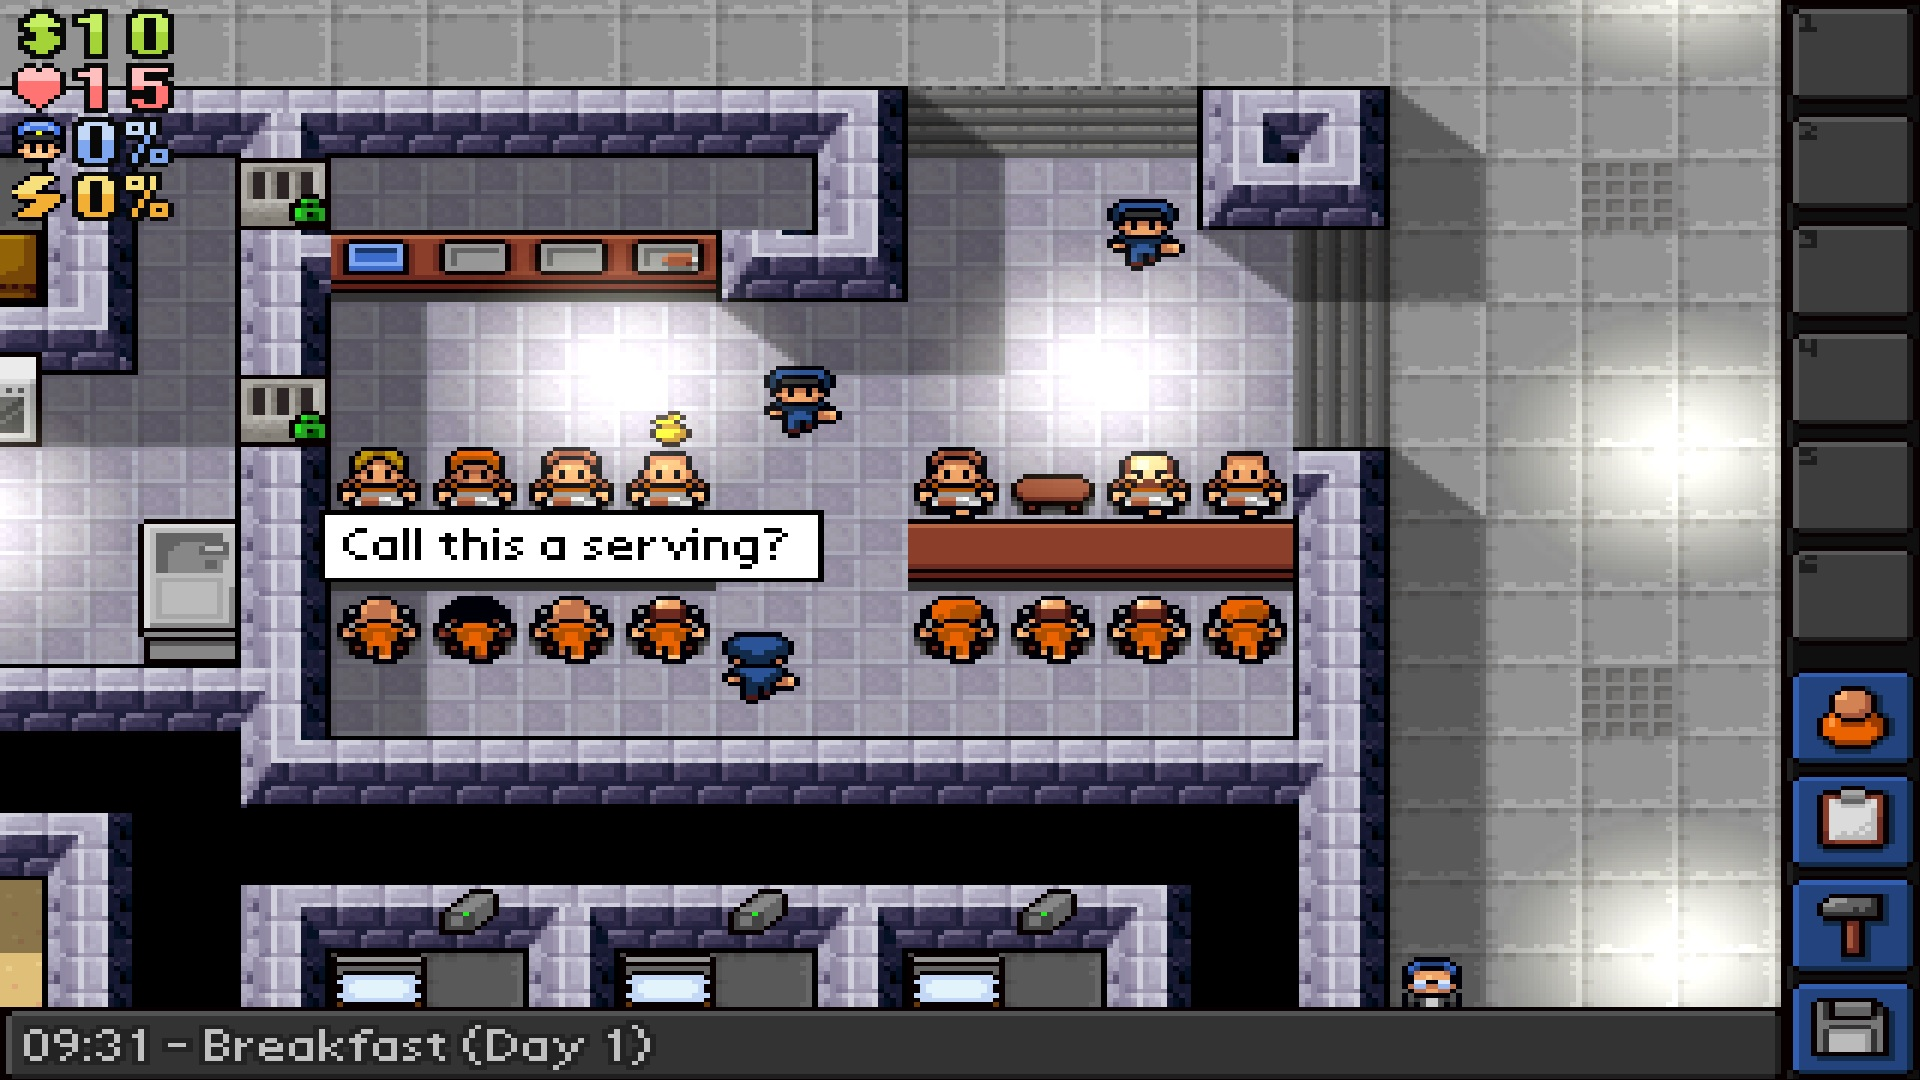 The Escapists - Fhurst Peak Correctional Facility [Online Game Code] by Team17 (Image #8)